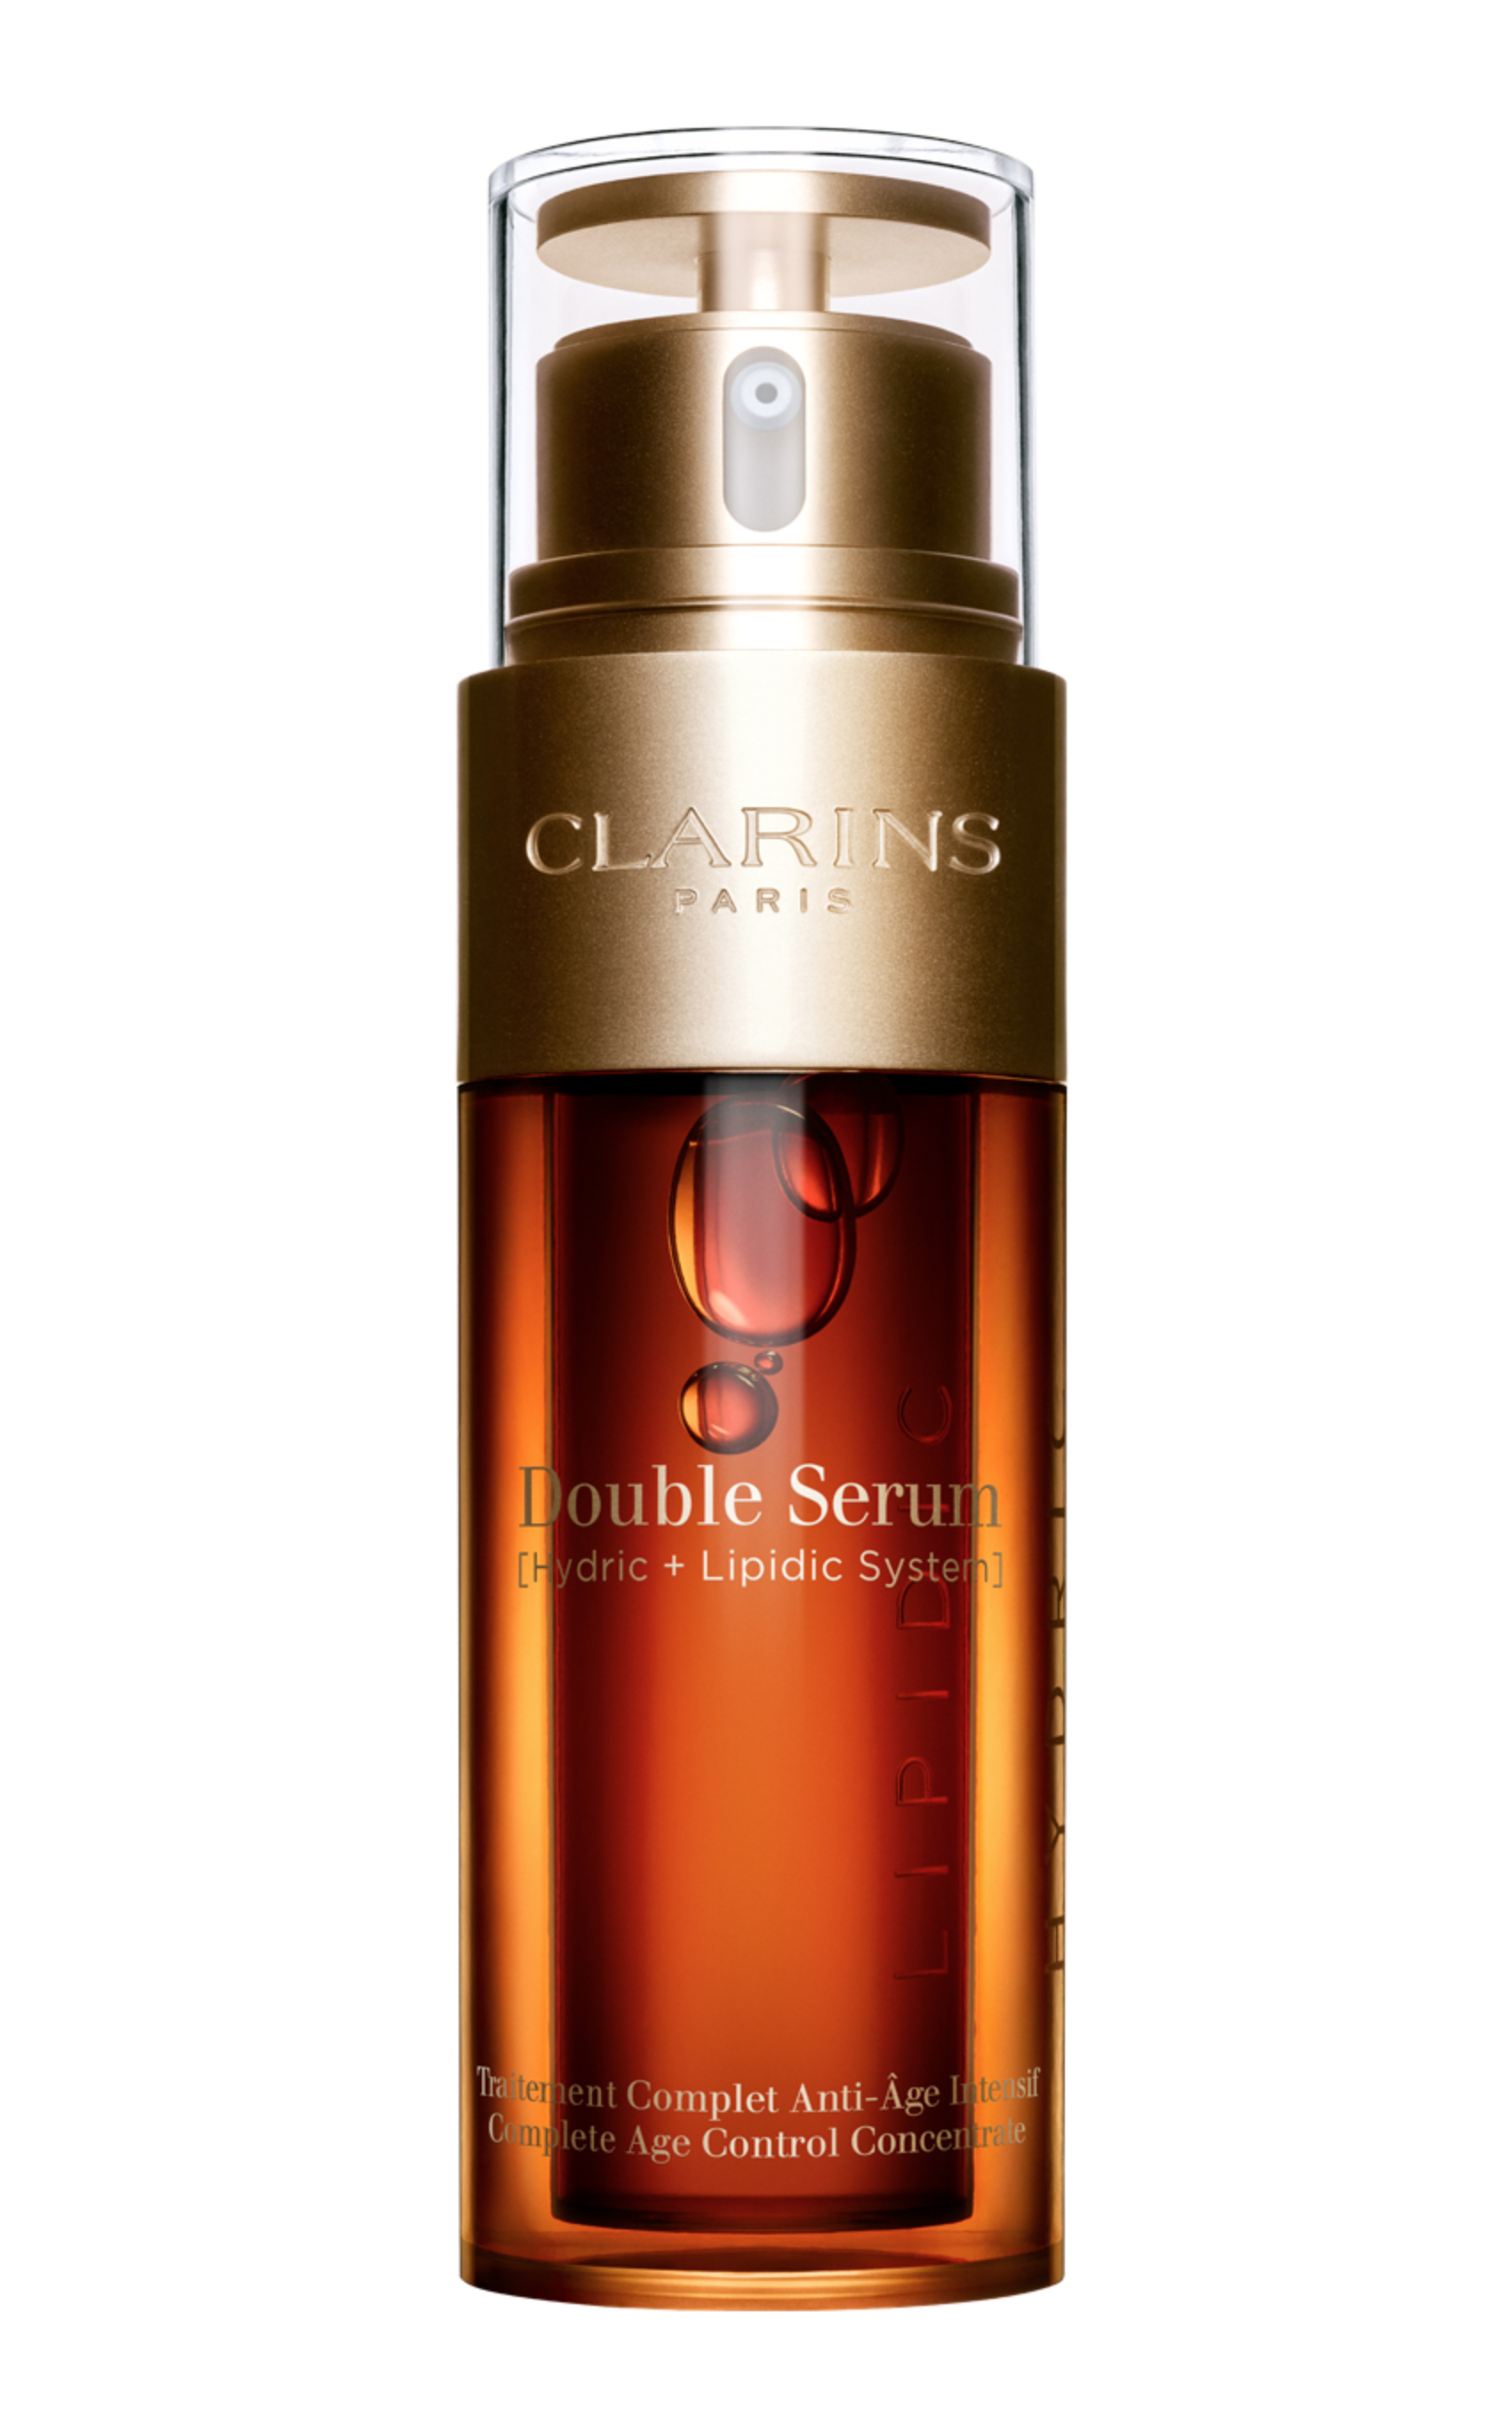 Clarins Double Serum 2017 review